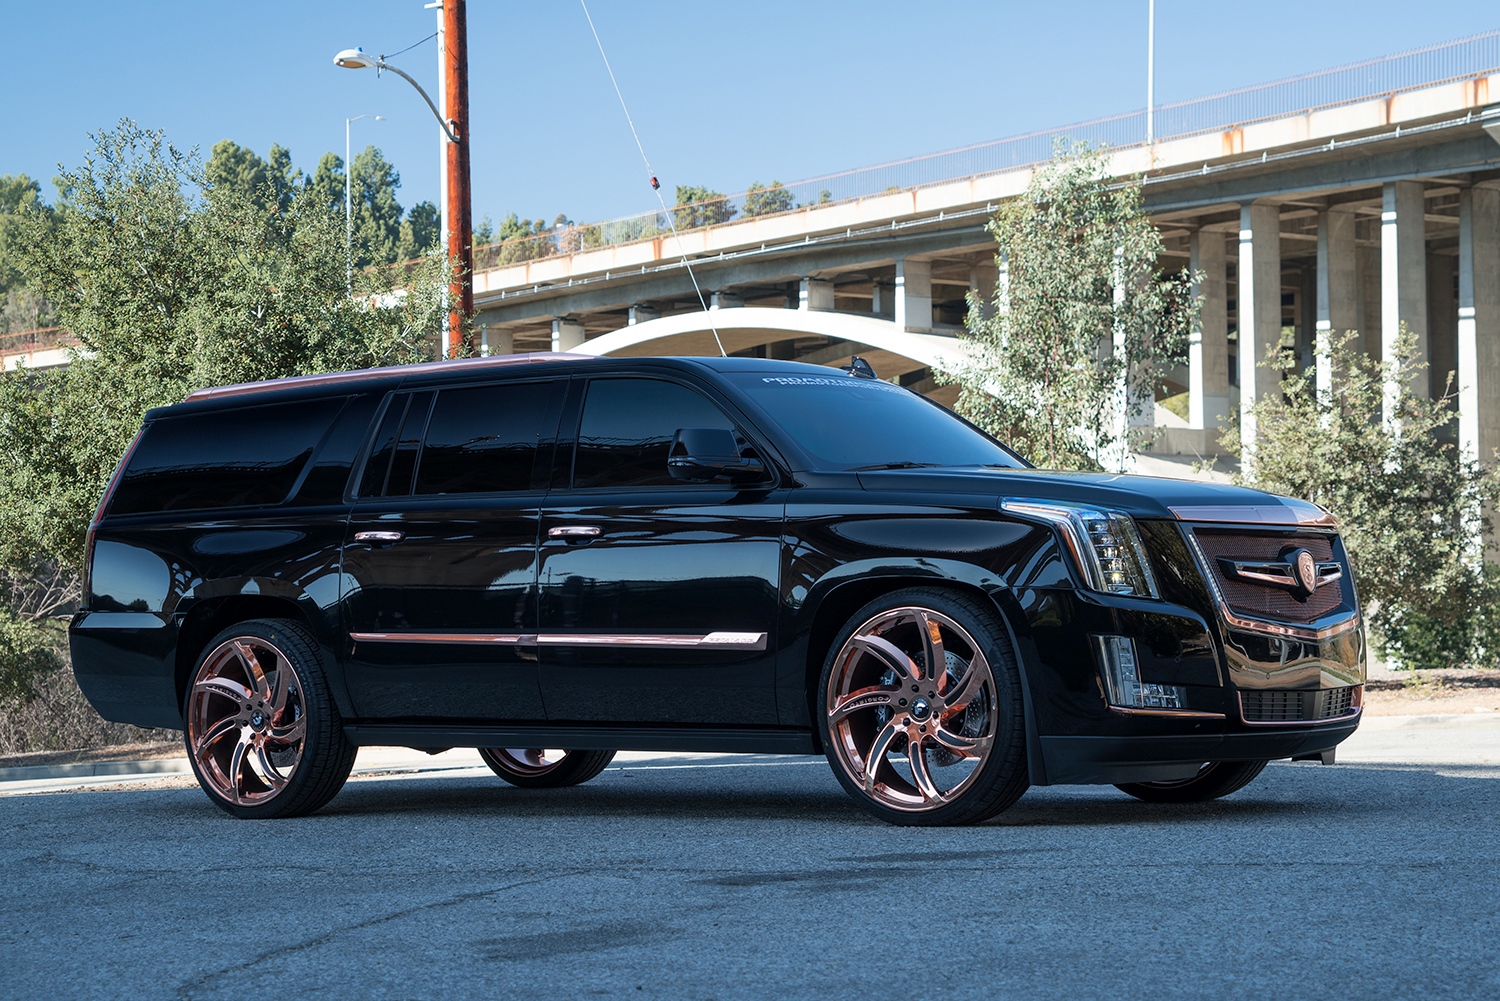 Lexani wheels the leader in custom luxury wheels cadillac escalade on 24 lust car stuff pinterest cadillac escalade cadillac and wheels